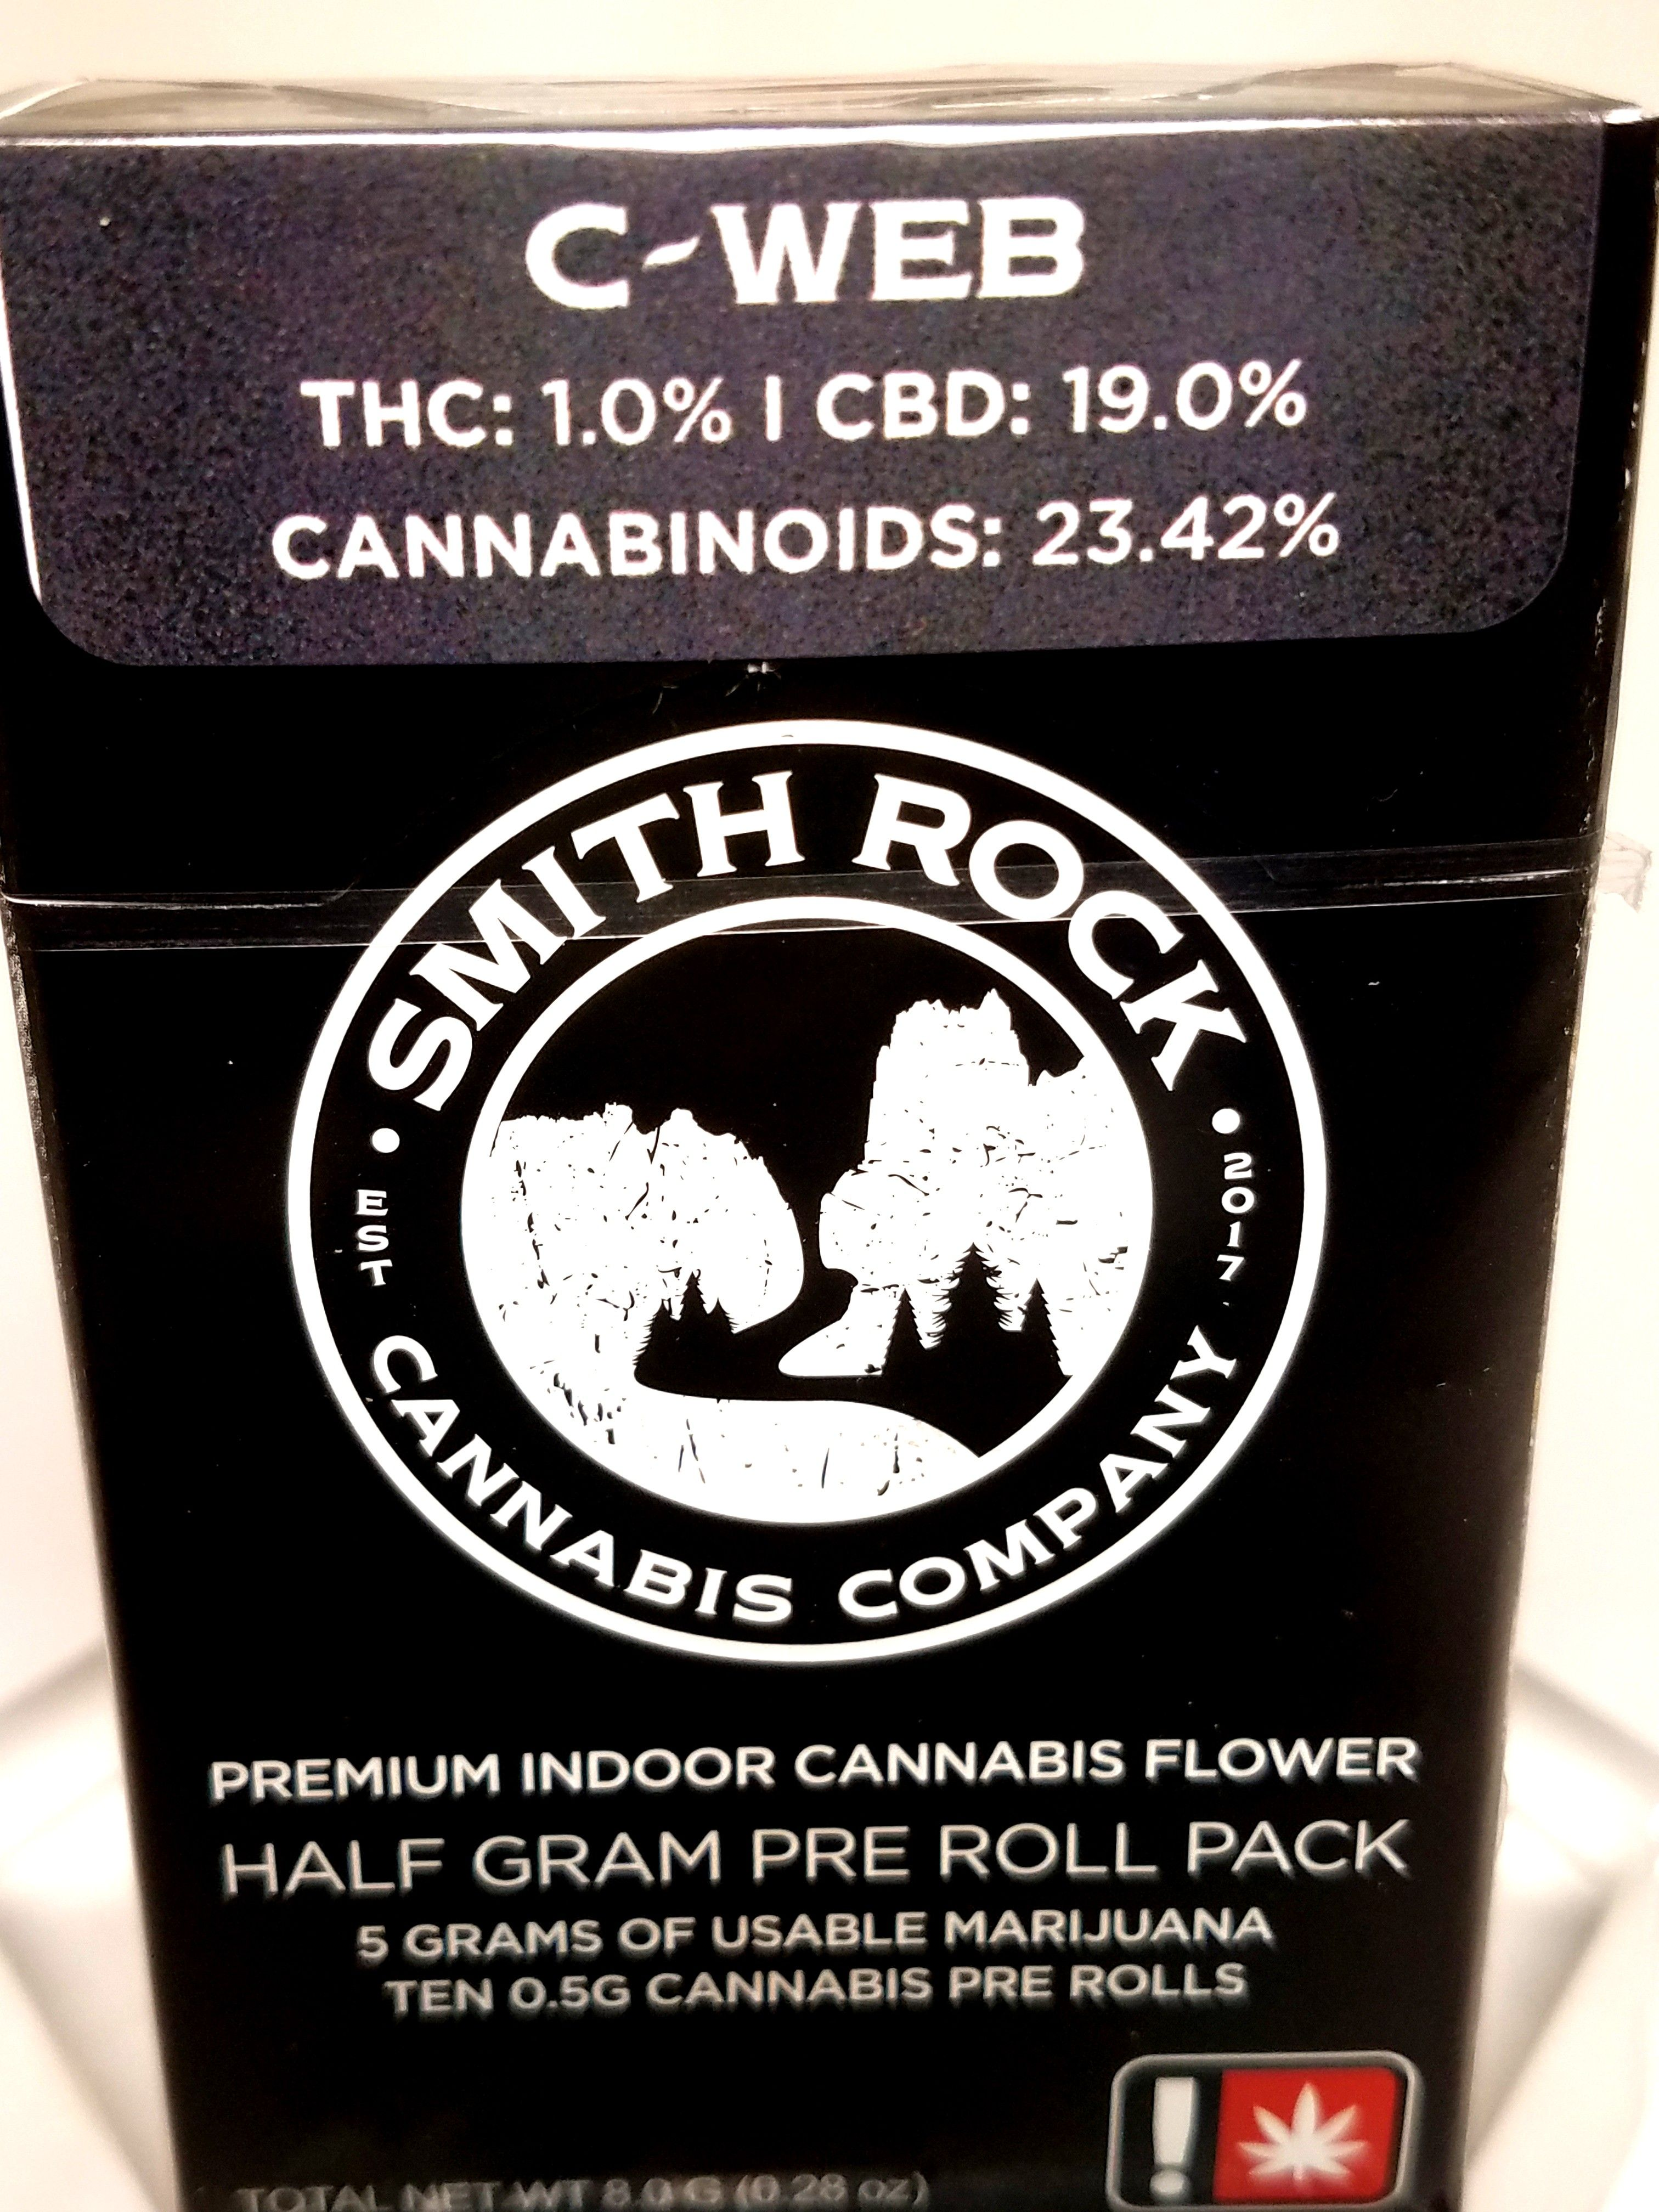 Smith Rock Cannabis Company - C Web, High CBD, Sativa Hybrid, 10 Pack